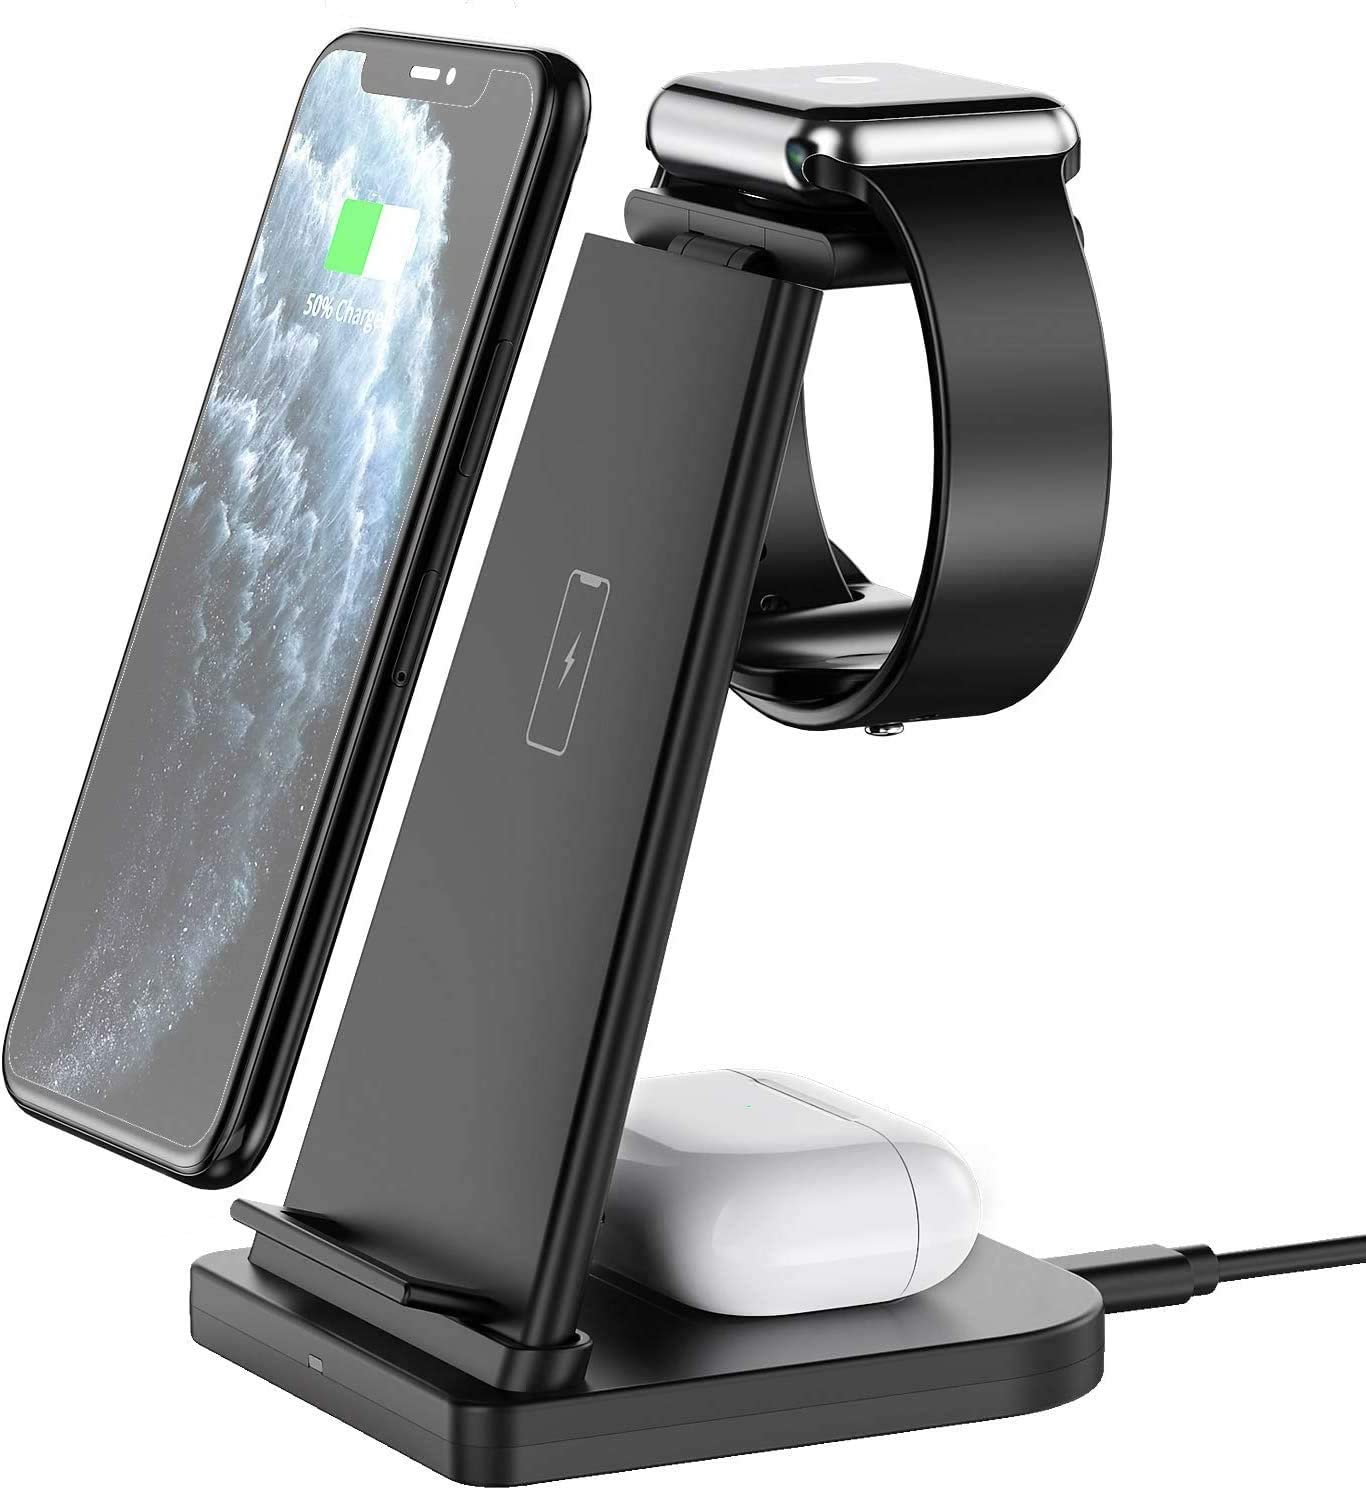 Wireless Charger Station, ABMAX 3 in 1 Multi Charging Dock for iPhone,Apple Watch Series and Airpods, Fast Qi Wireless Charger Stand for 12/12 Pro Max/11/Xs/Xs Max/XR/8/8+/Samsung etc